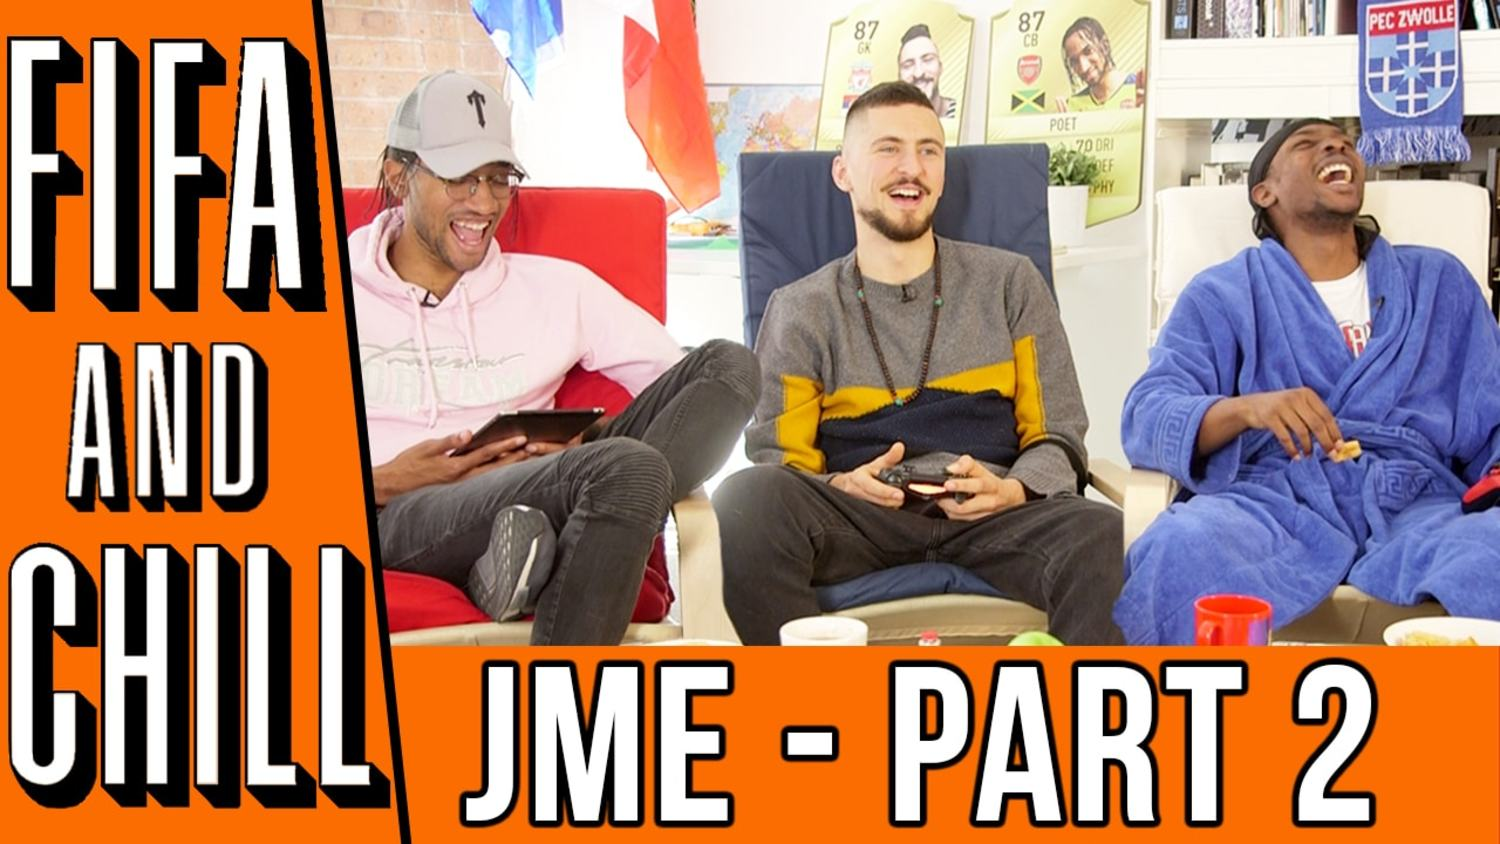 FIFA and Chill with Jme - Part 2